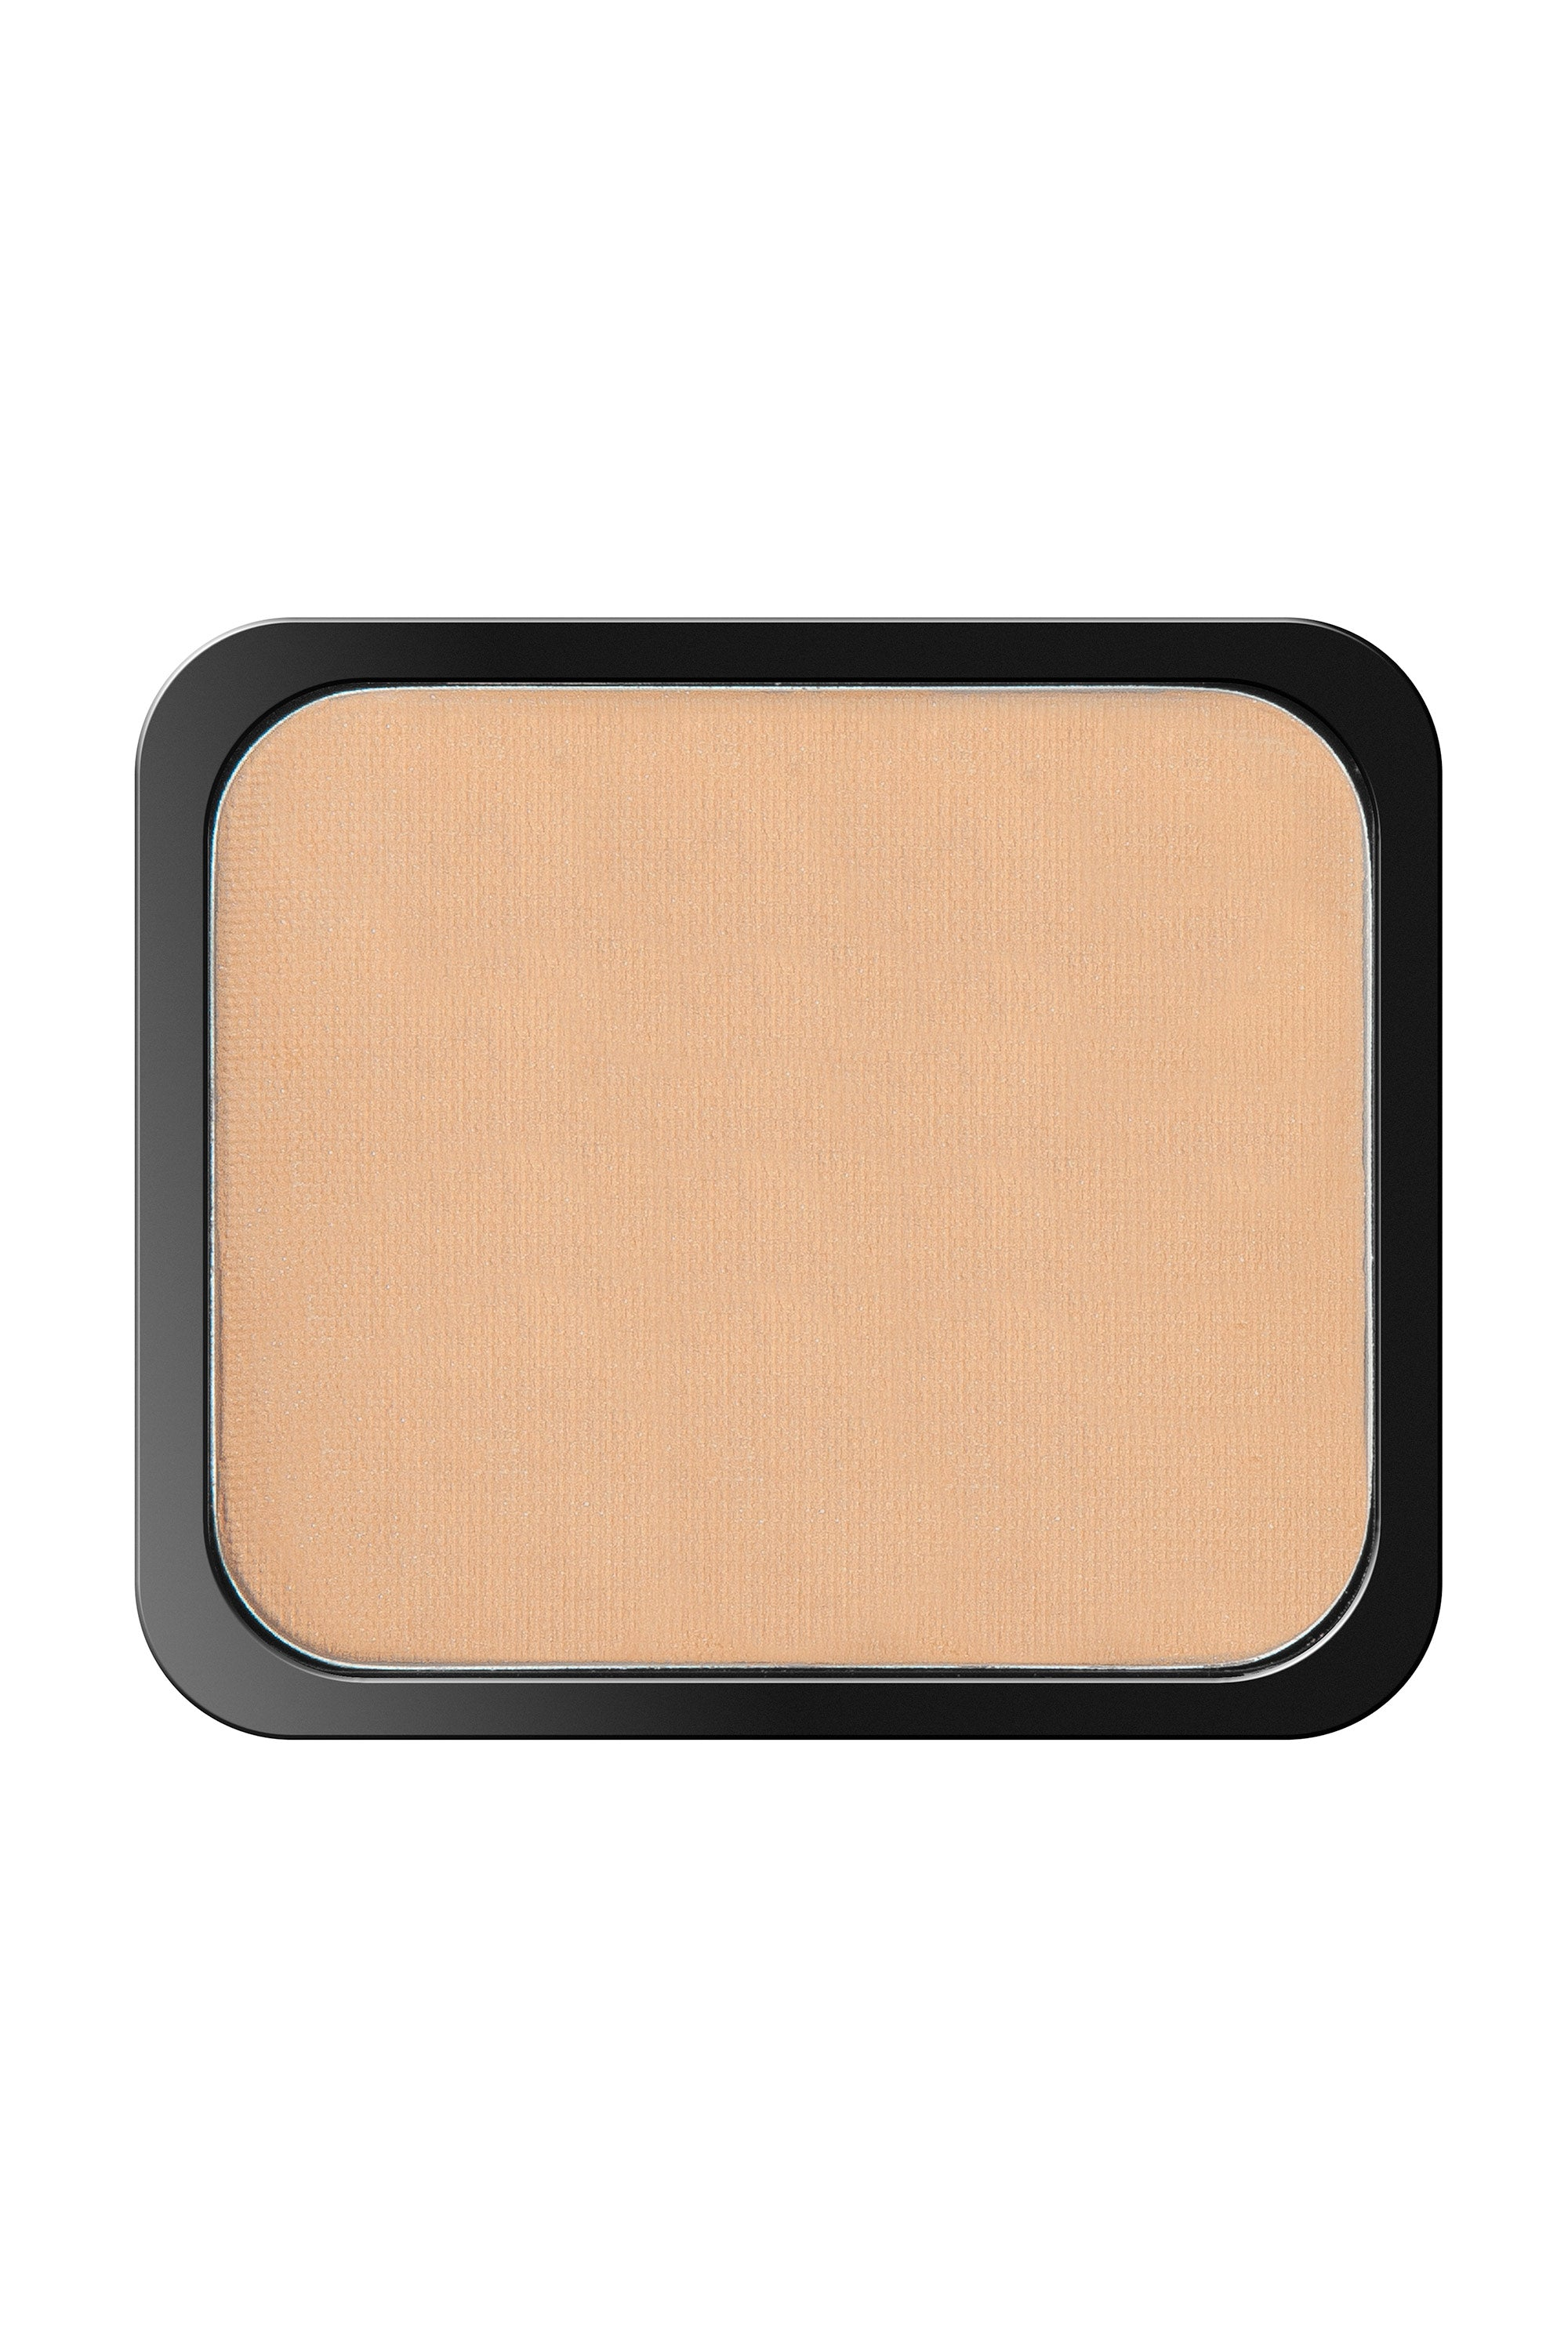 Two-Way Foundation - Creme Beige